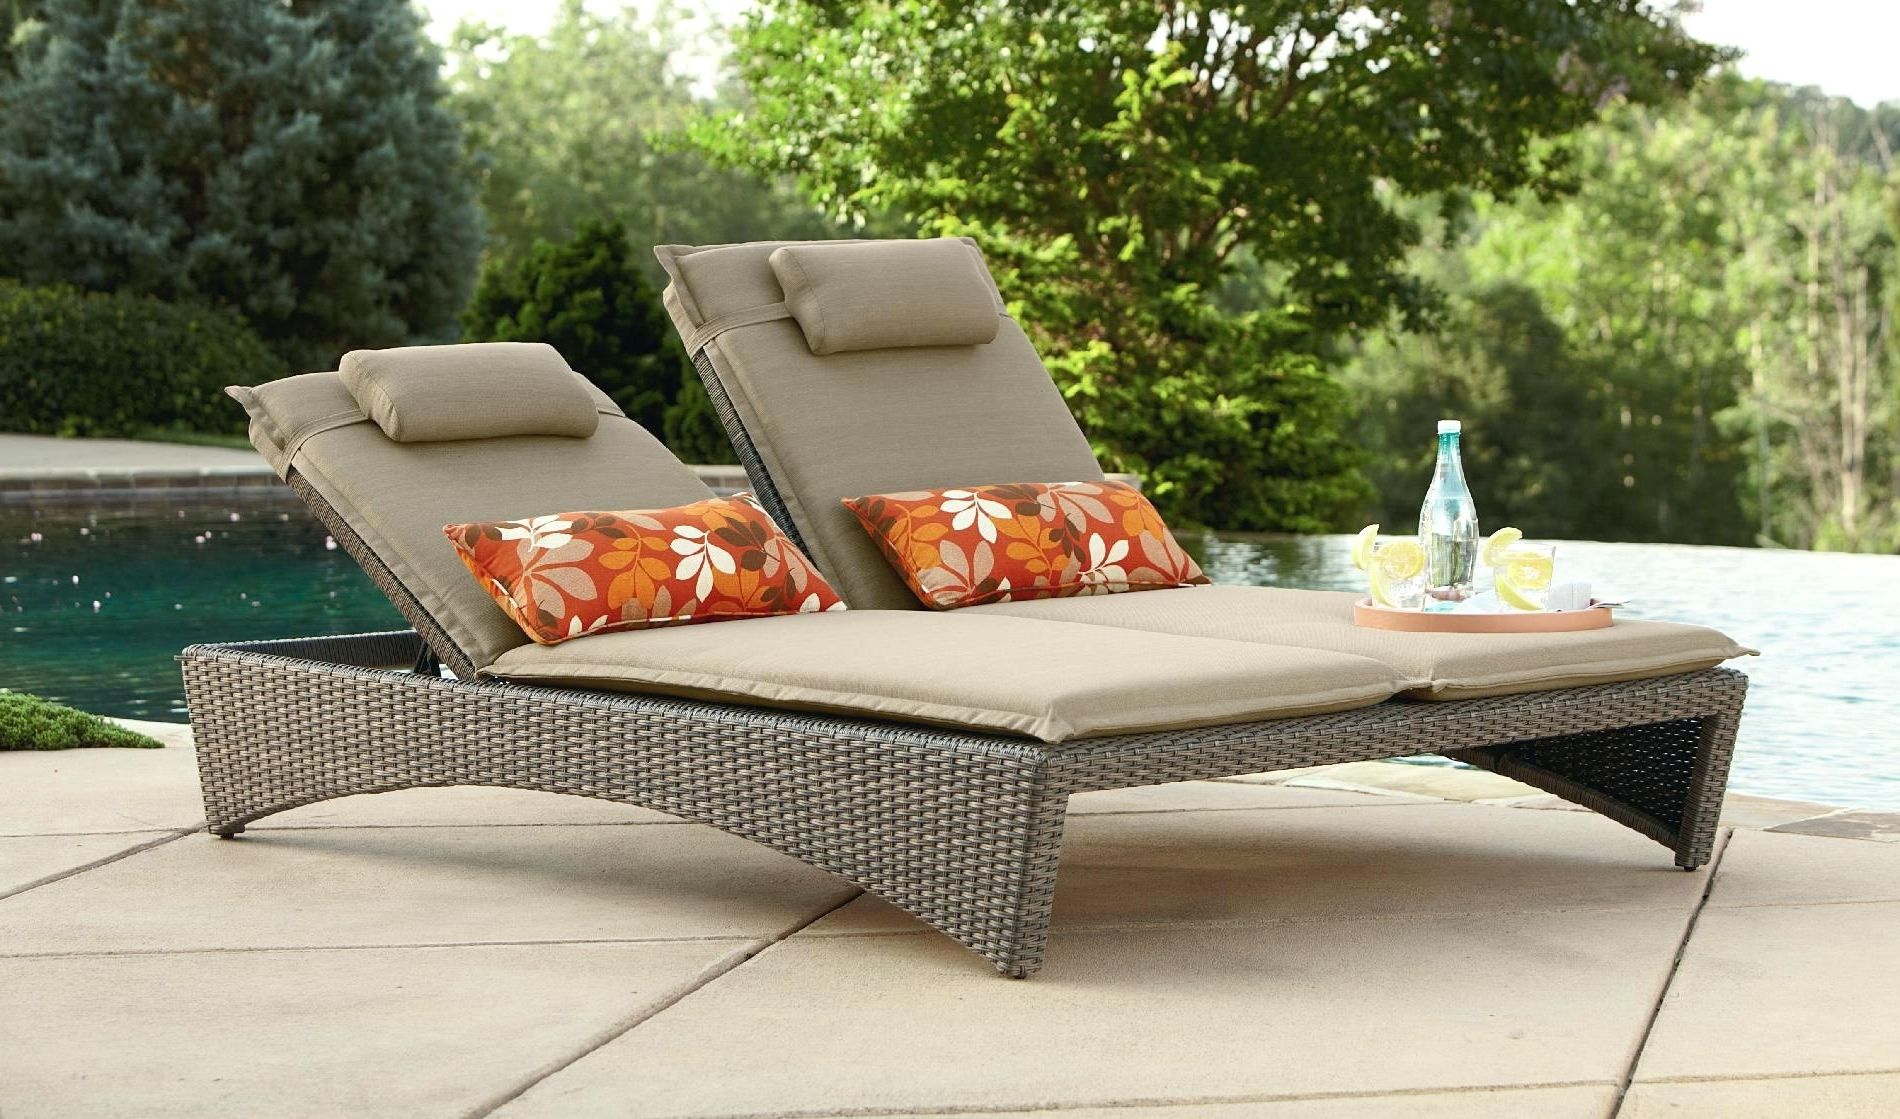 Outdoor Chaise Lounge Chairs Under 100 Awesome Chair For Two With Regard To Best And Newest Chaise Lounge Chairs For Poolside (View 12 of 15)